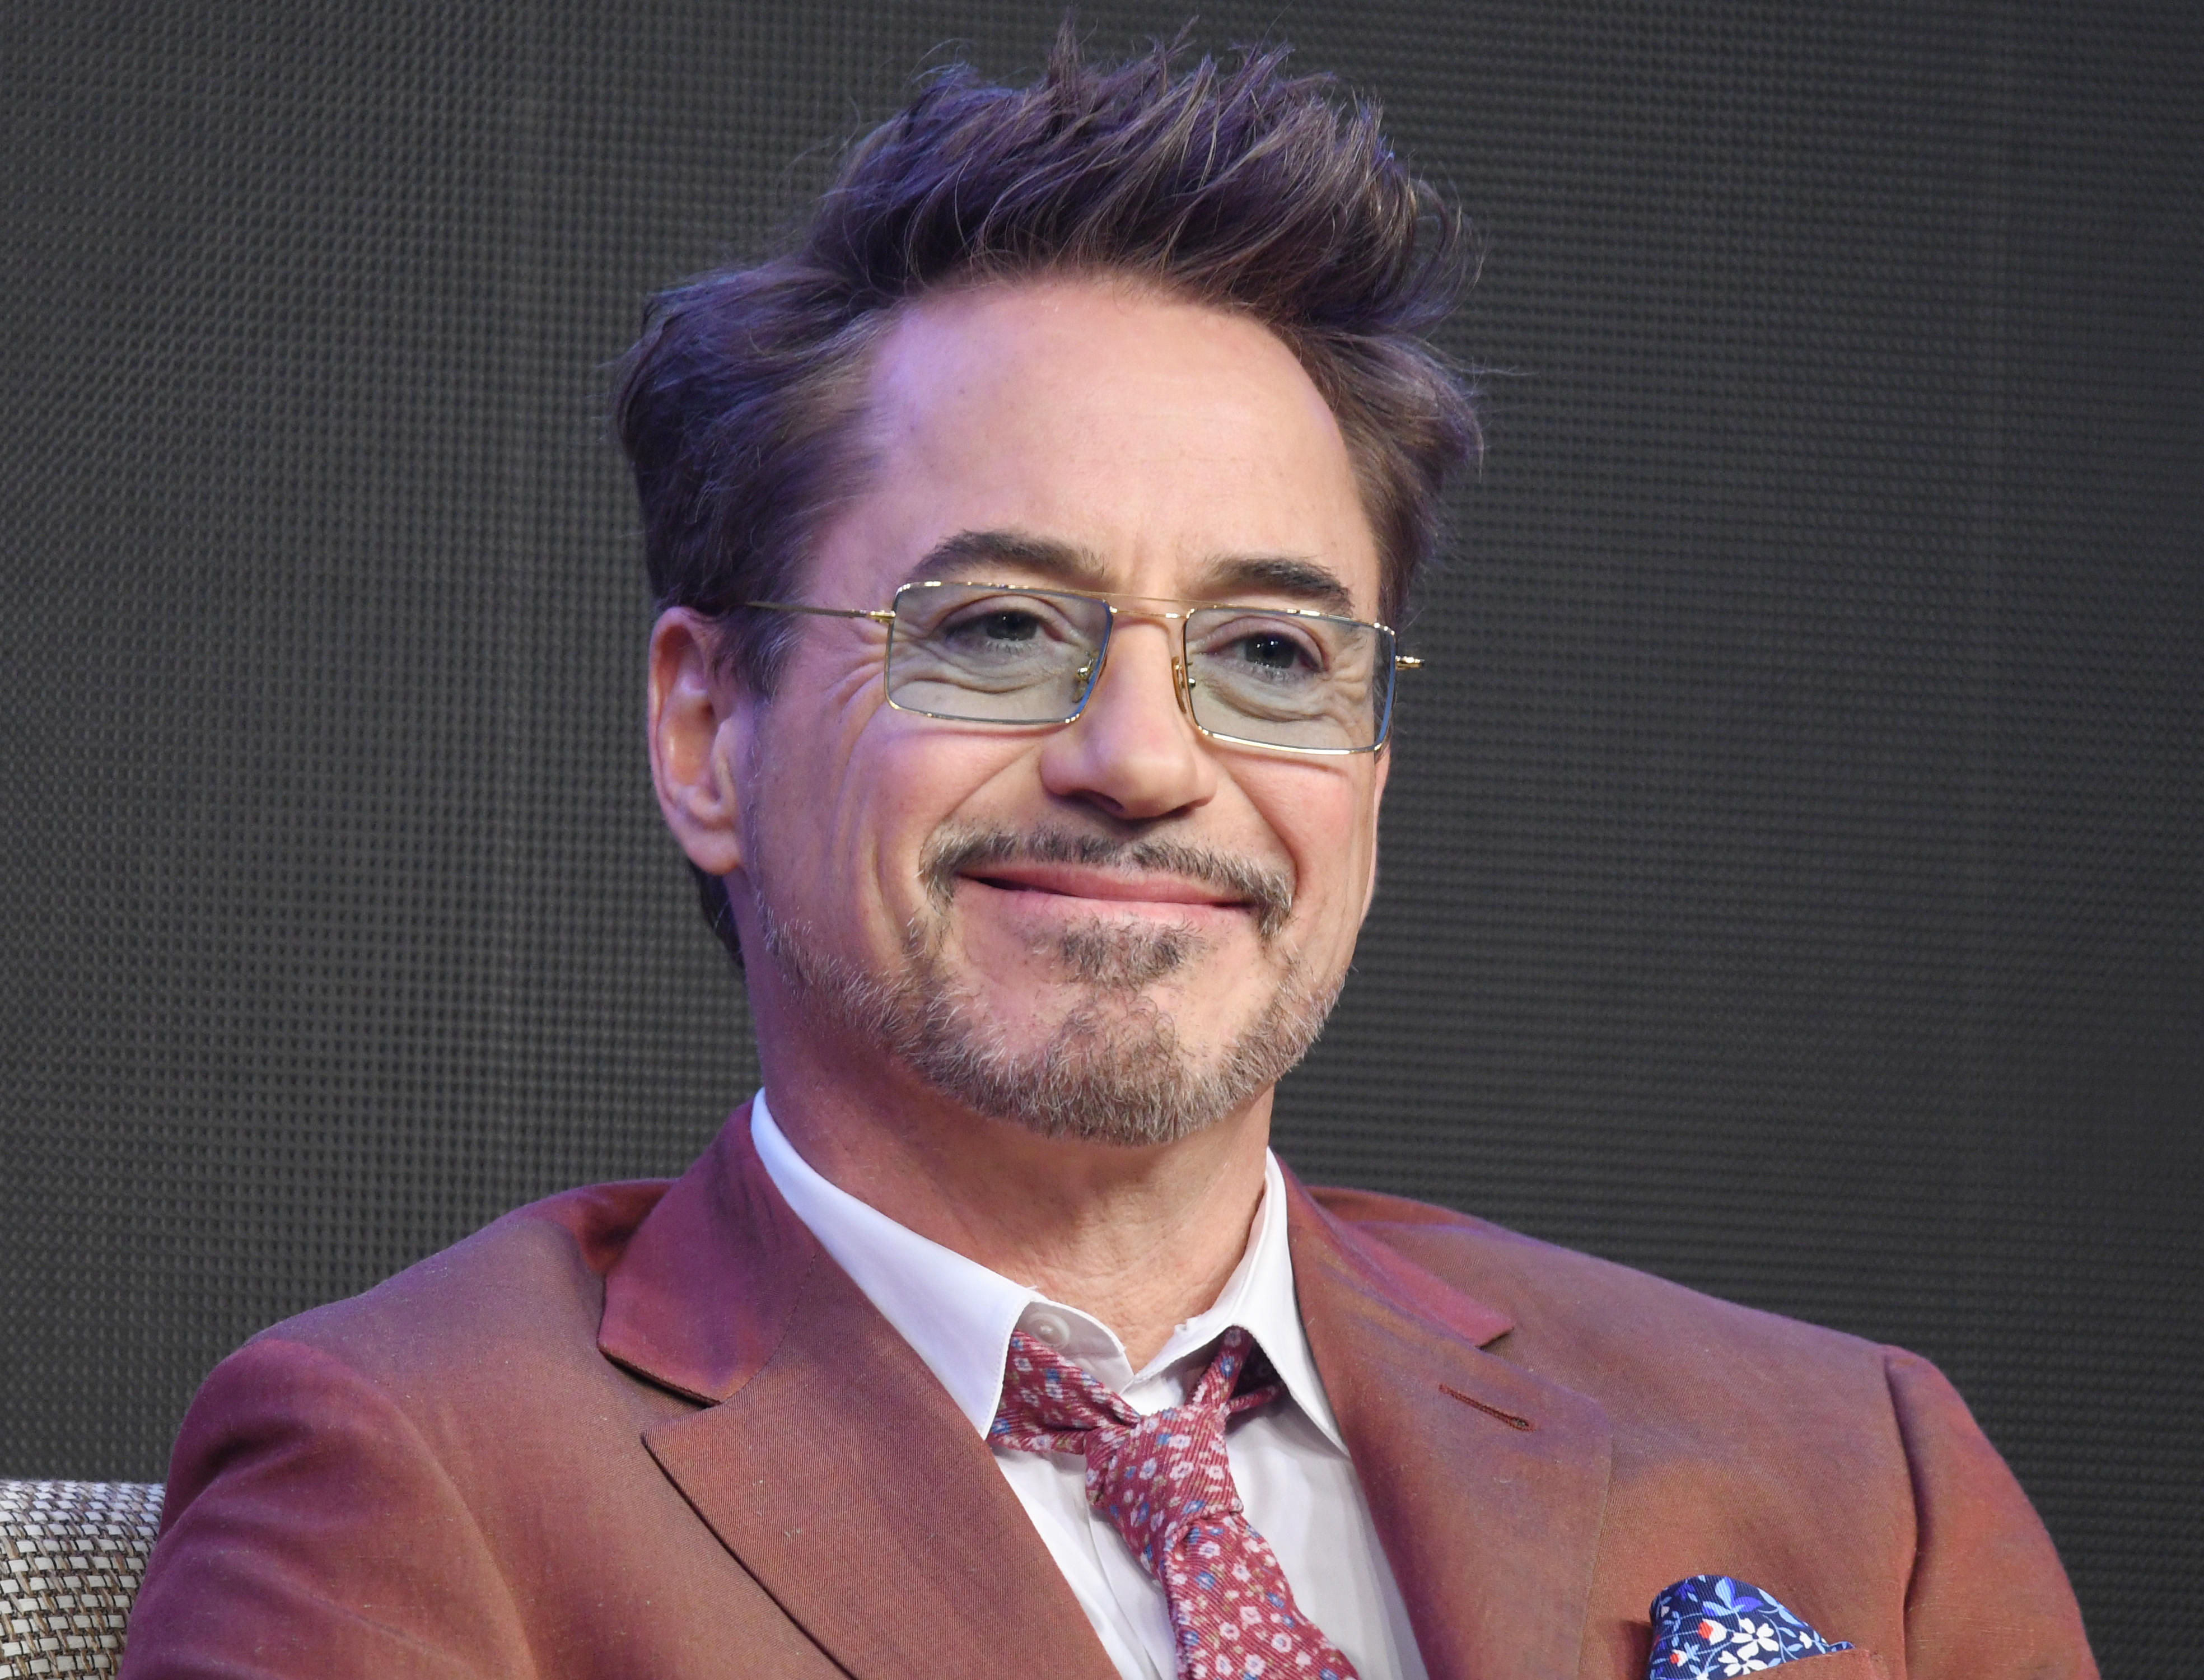 """<p>SEOUL, SOUTH KOREA - APRIL 15: Robert Downey Jr. during a press conference for the movie """"Avengers: End Game"""" at the Four Seasons Hotel on April 15, 2019 in Seoul, South Korea. (Photo by The Chosunilbo JNS/Imazins via Getty Images)</p>"""